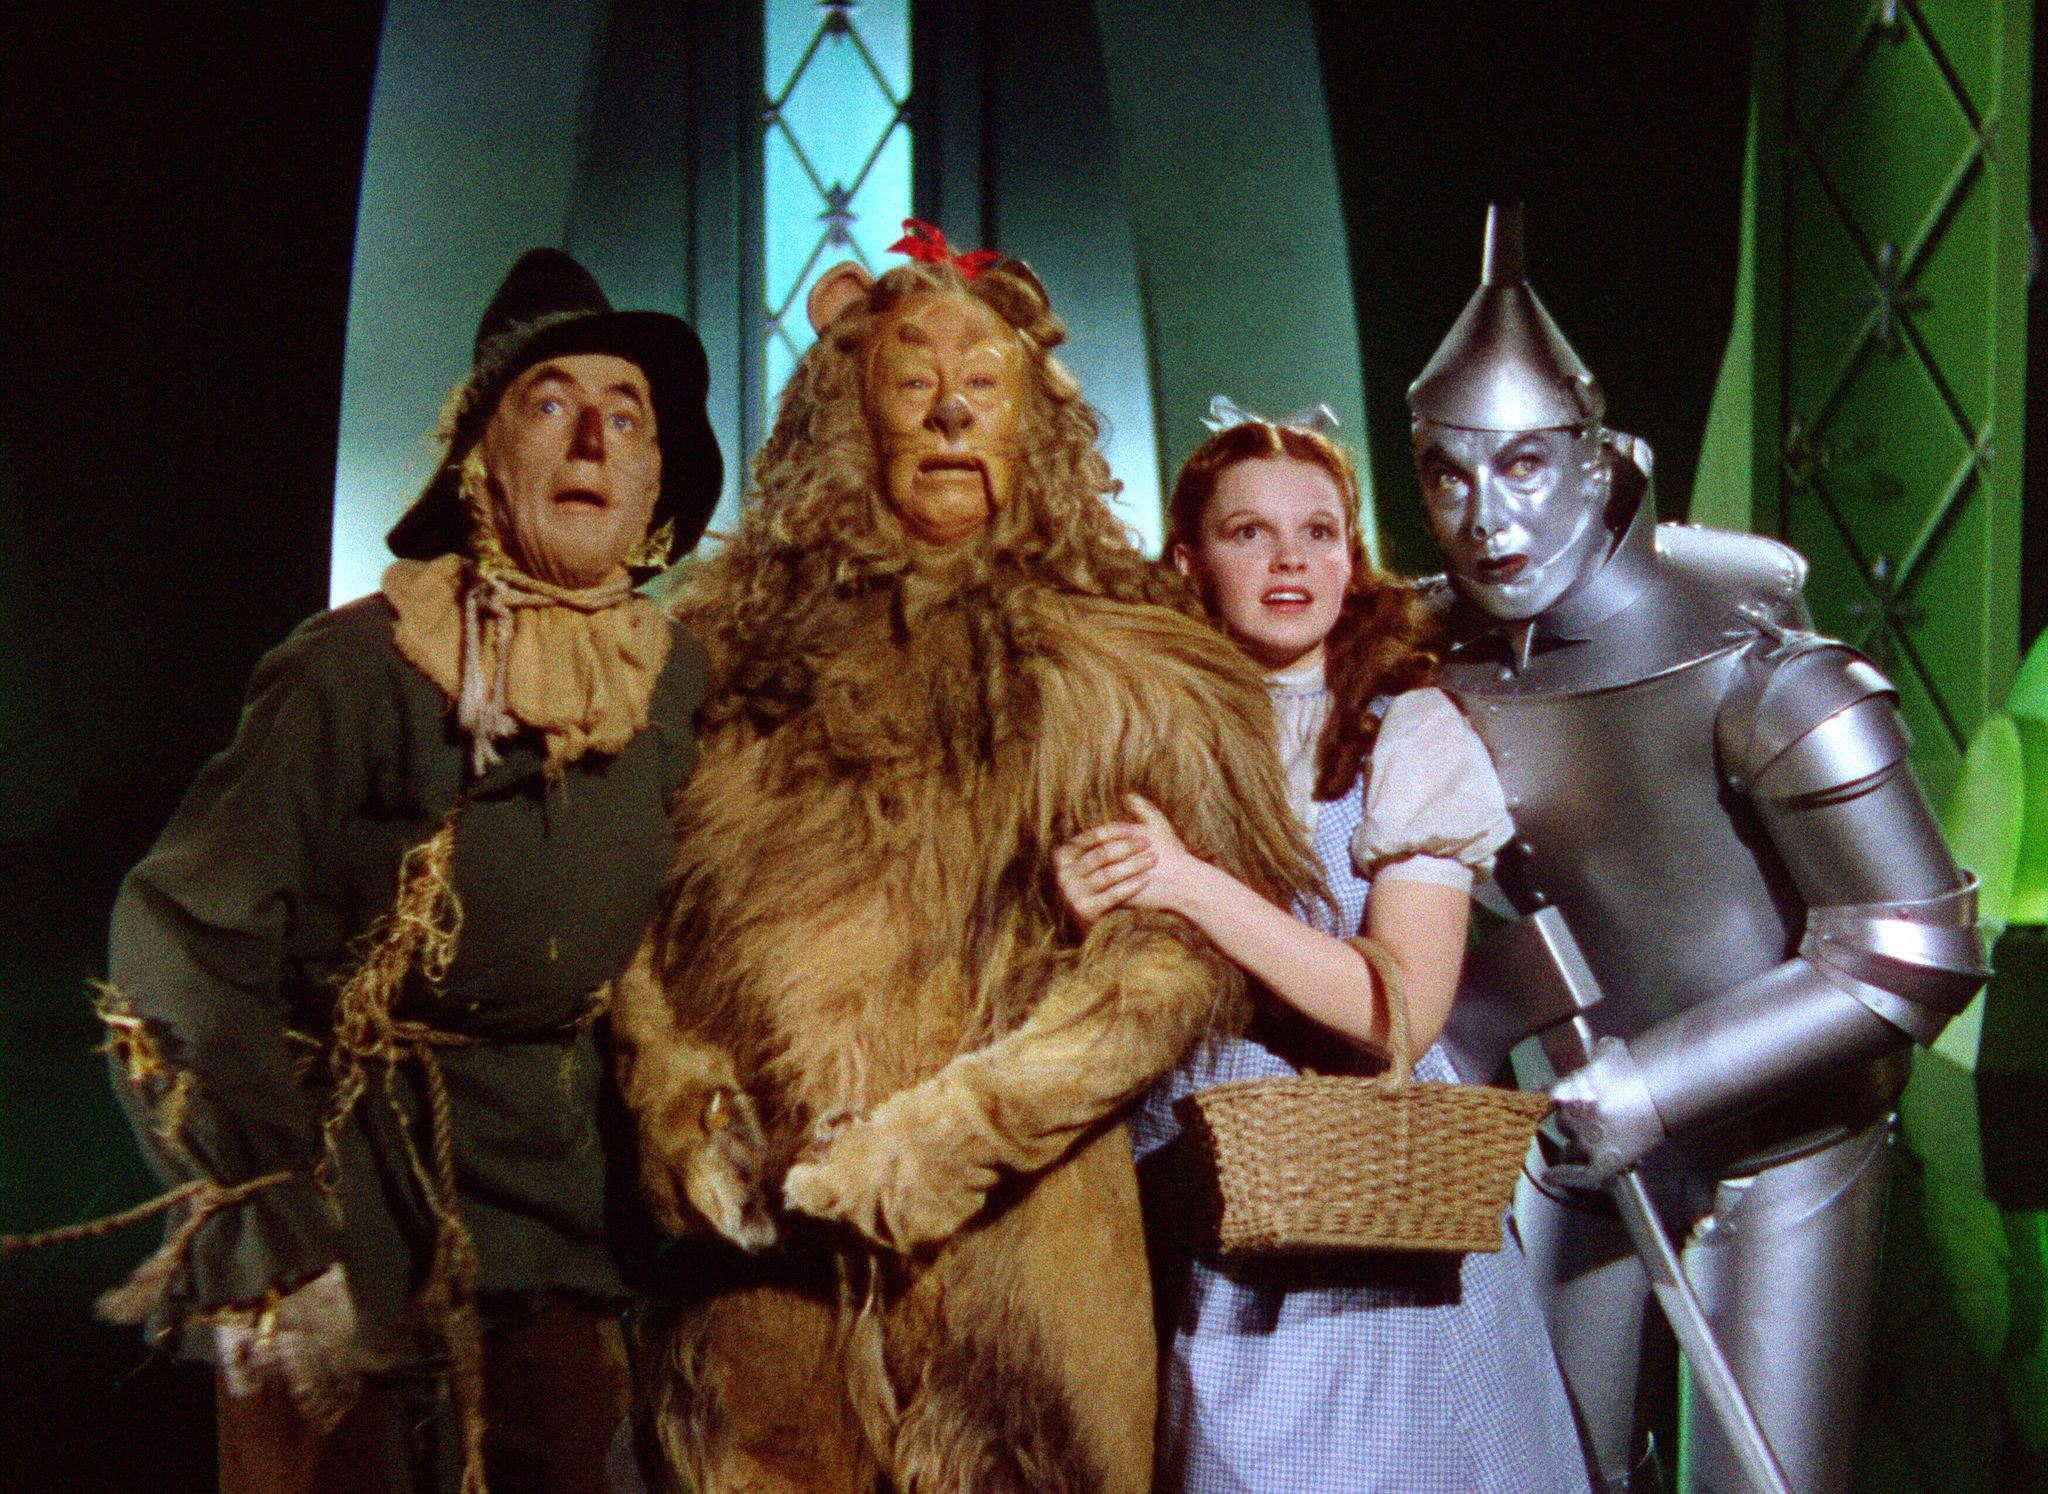 Dementia Friendly Cinema: The Wizard of Oz - Tyneside Cinema